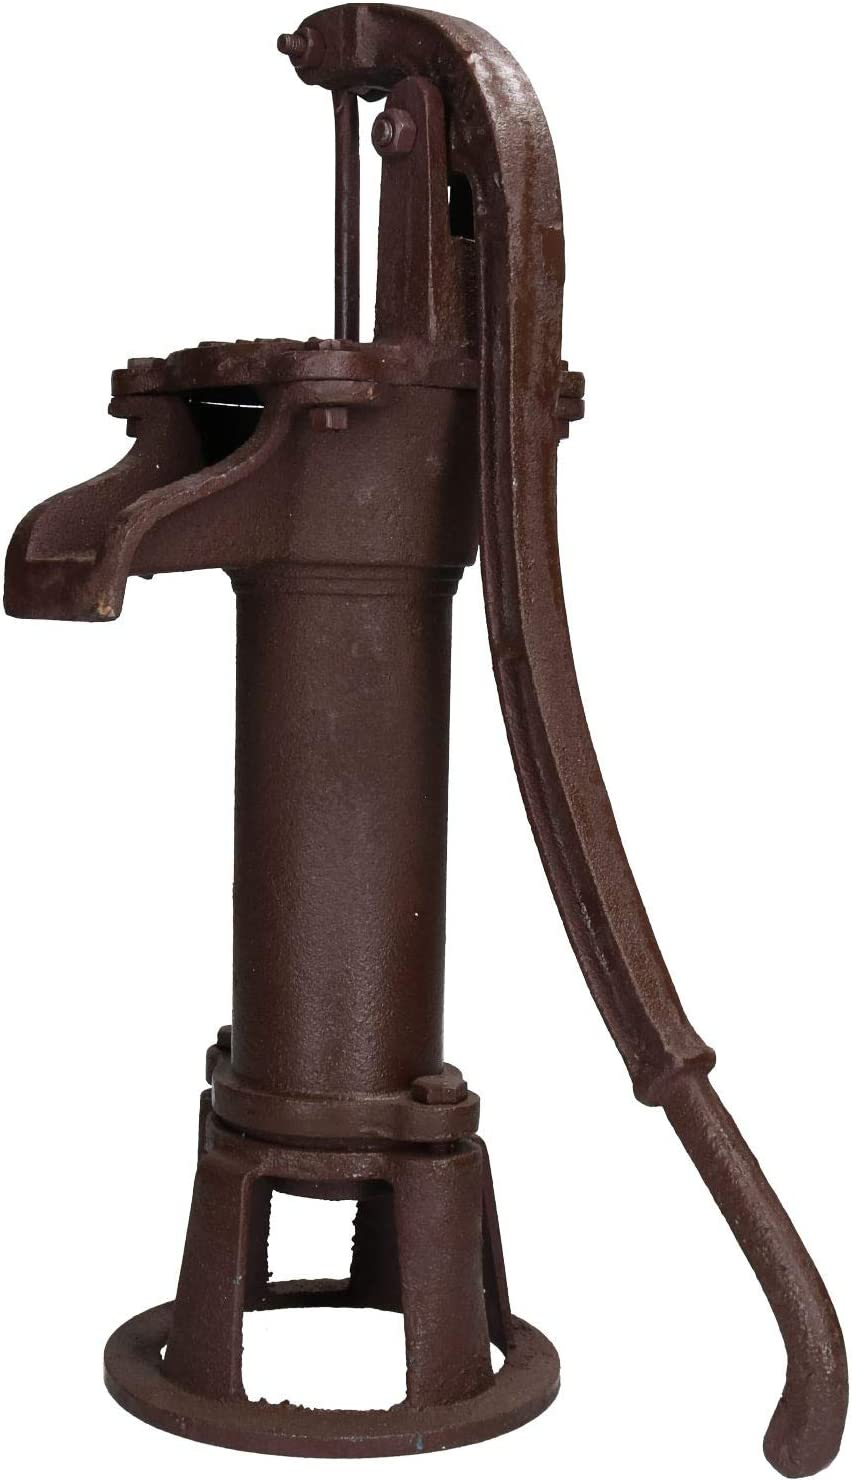 AB Tools Garden Hand Water Pump Vintage Style Cast Iron Well Ornament Feature Decoration